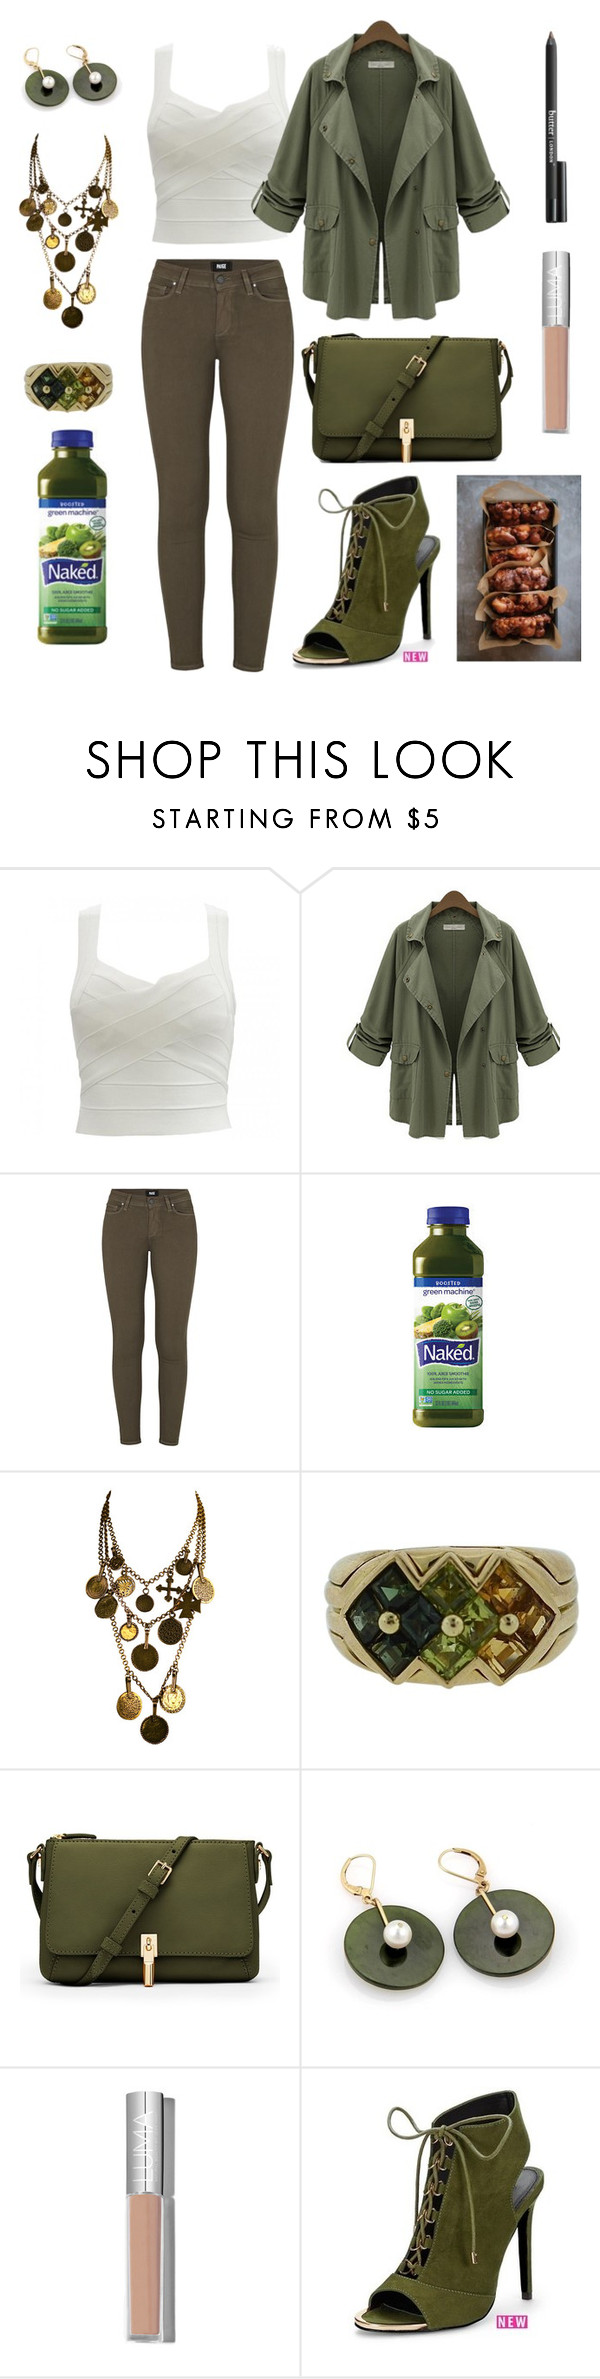 """""""Green Machine ⚖"""" by breeyvonne ❤ liked on Polyvore featuring Chicnova Fashion, Paige Denim, Yves Saint Laurent, Bulgari, Elizabeth and James and Butter London"""